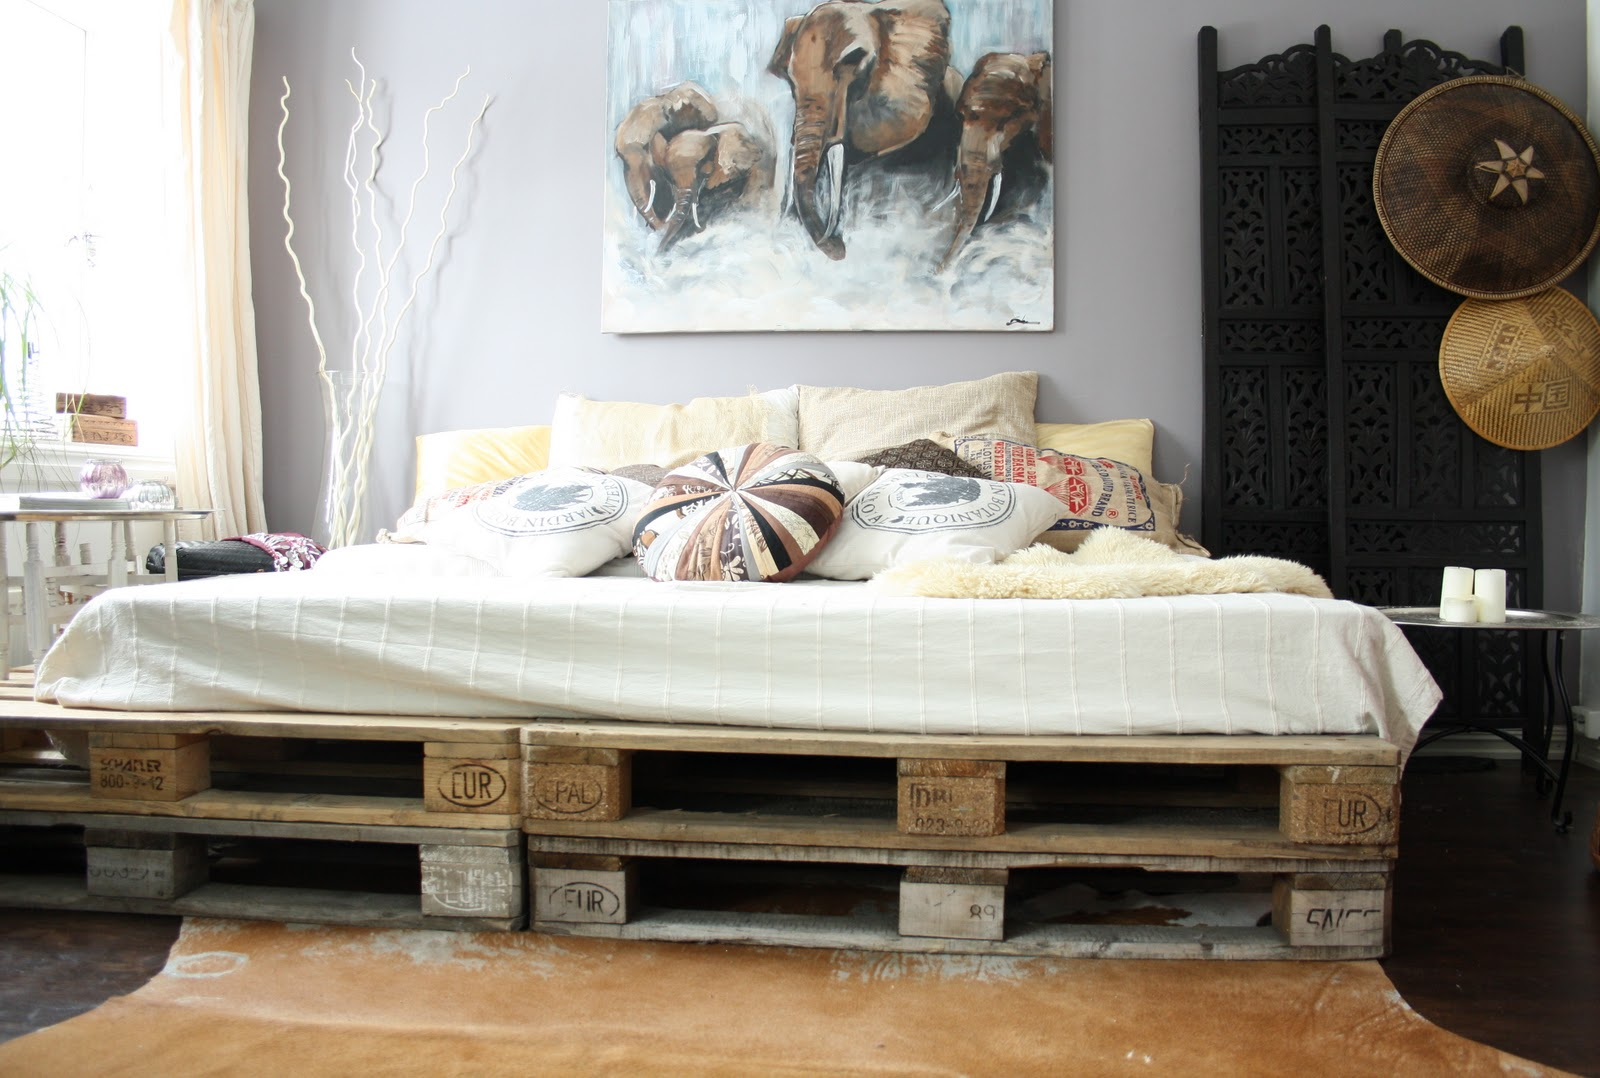 Matrimonio Bed You : Brilliant wooden pallet bed frame ideas for your house